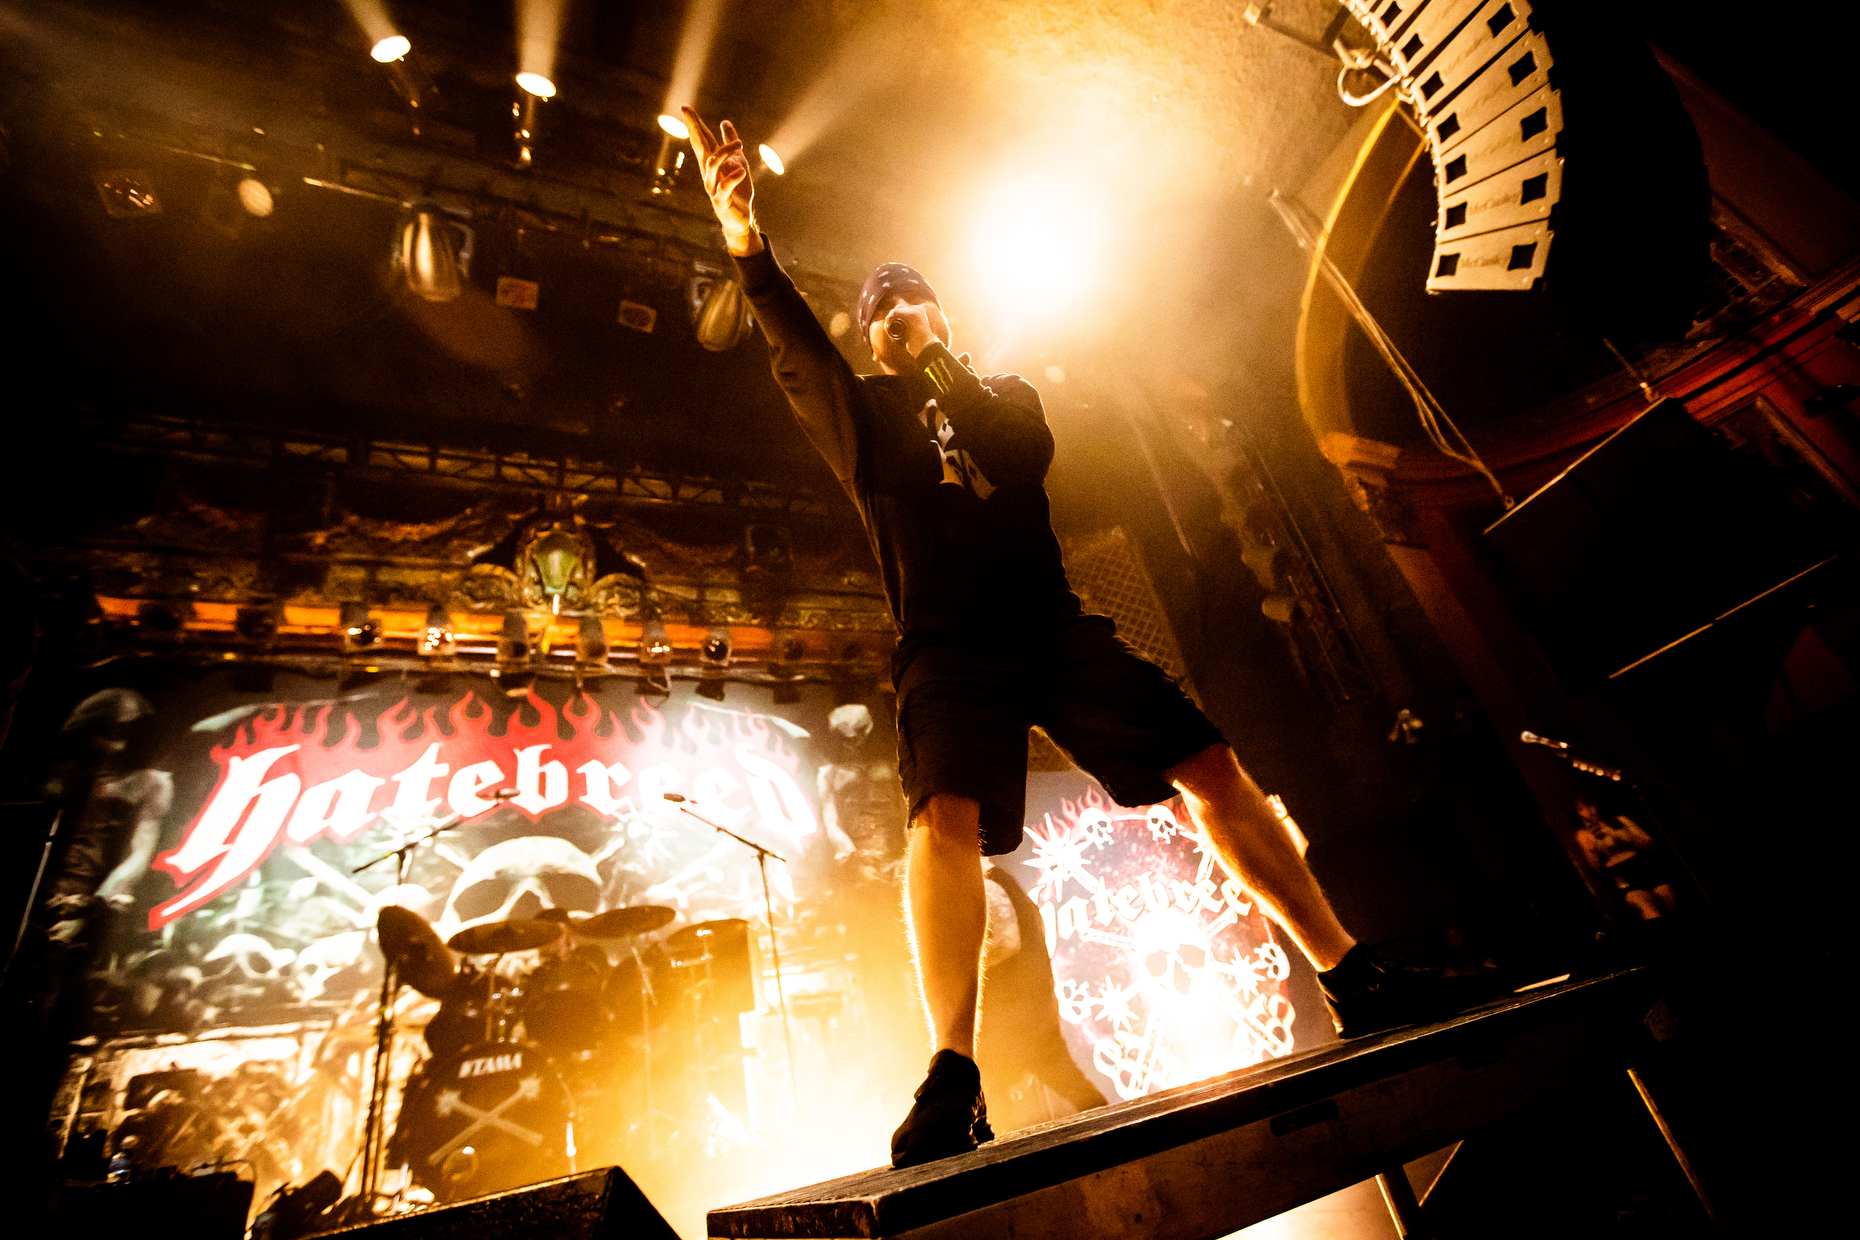 HATEBREED0043.JPG